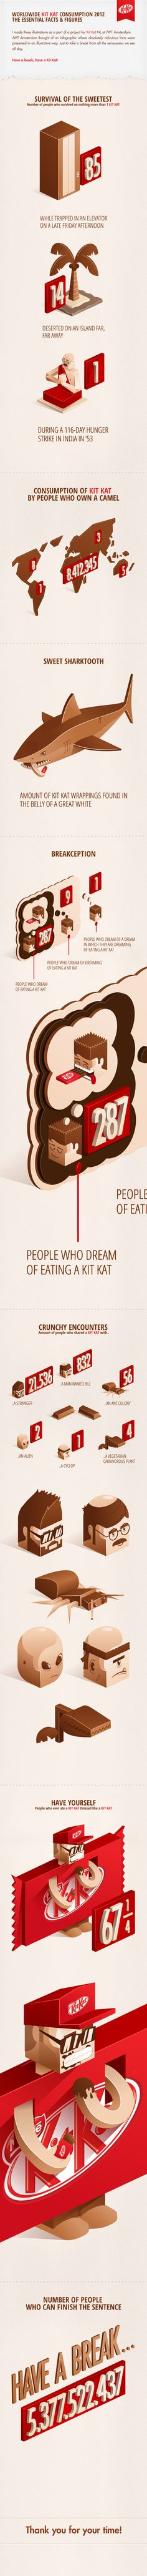 """Great 3-D graphics really mimic the appeal of the Kit Kat packaging in this infographic on """"Worldwide Kit Kat Consumption 2012"""""""